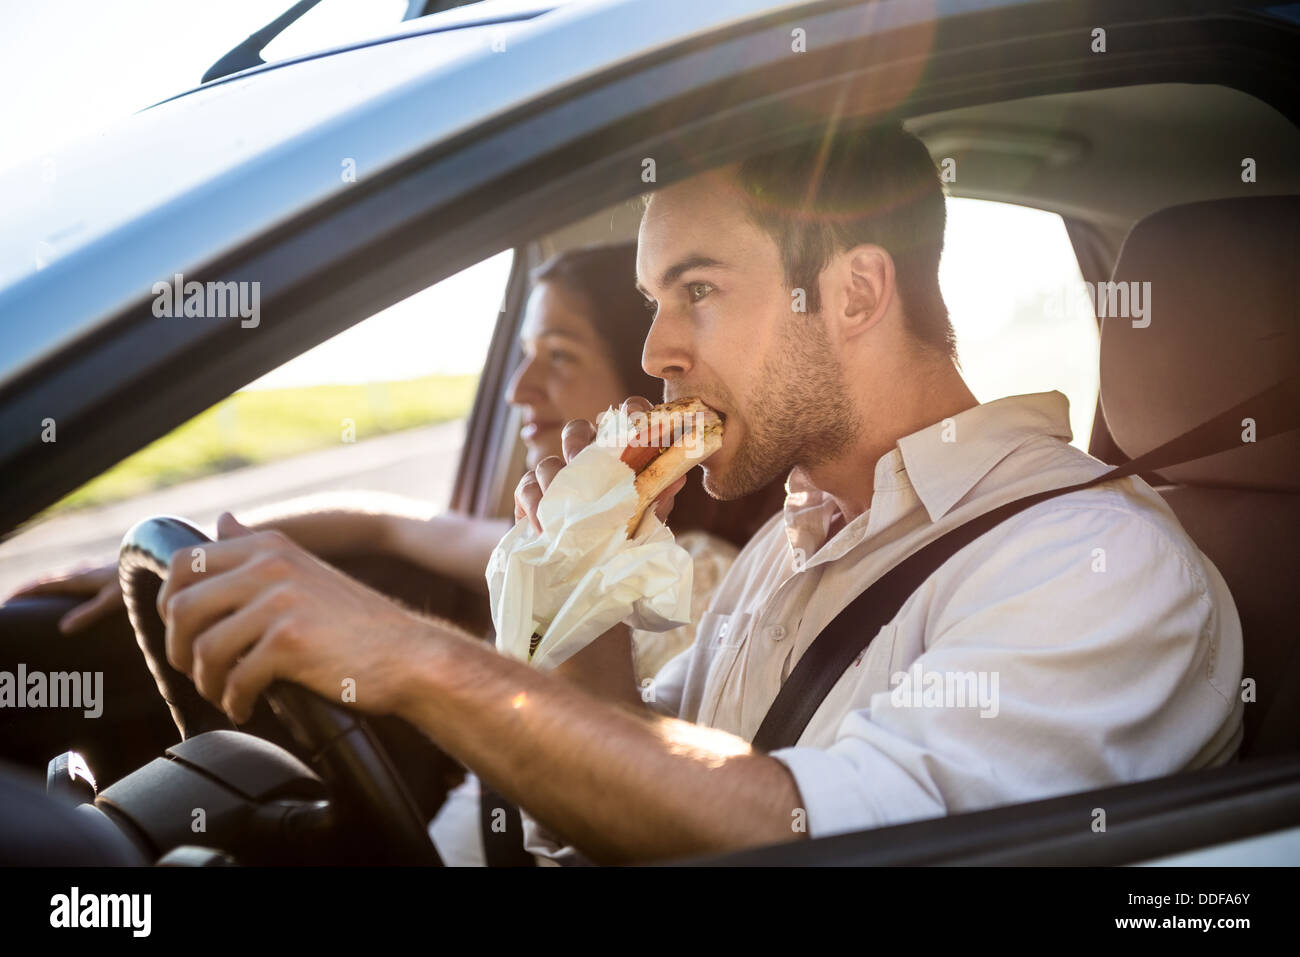 Couple in car - man is driving and eating baguette - Stock Image